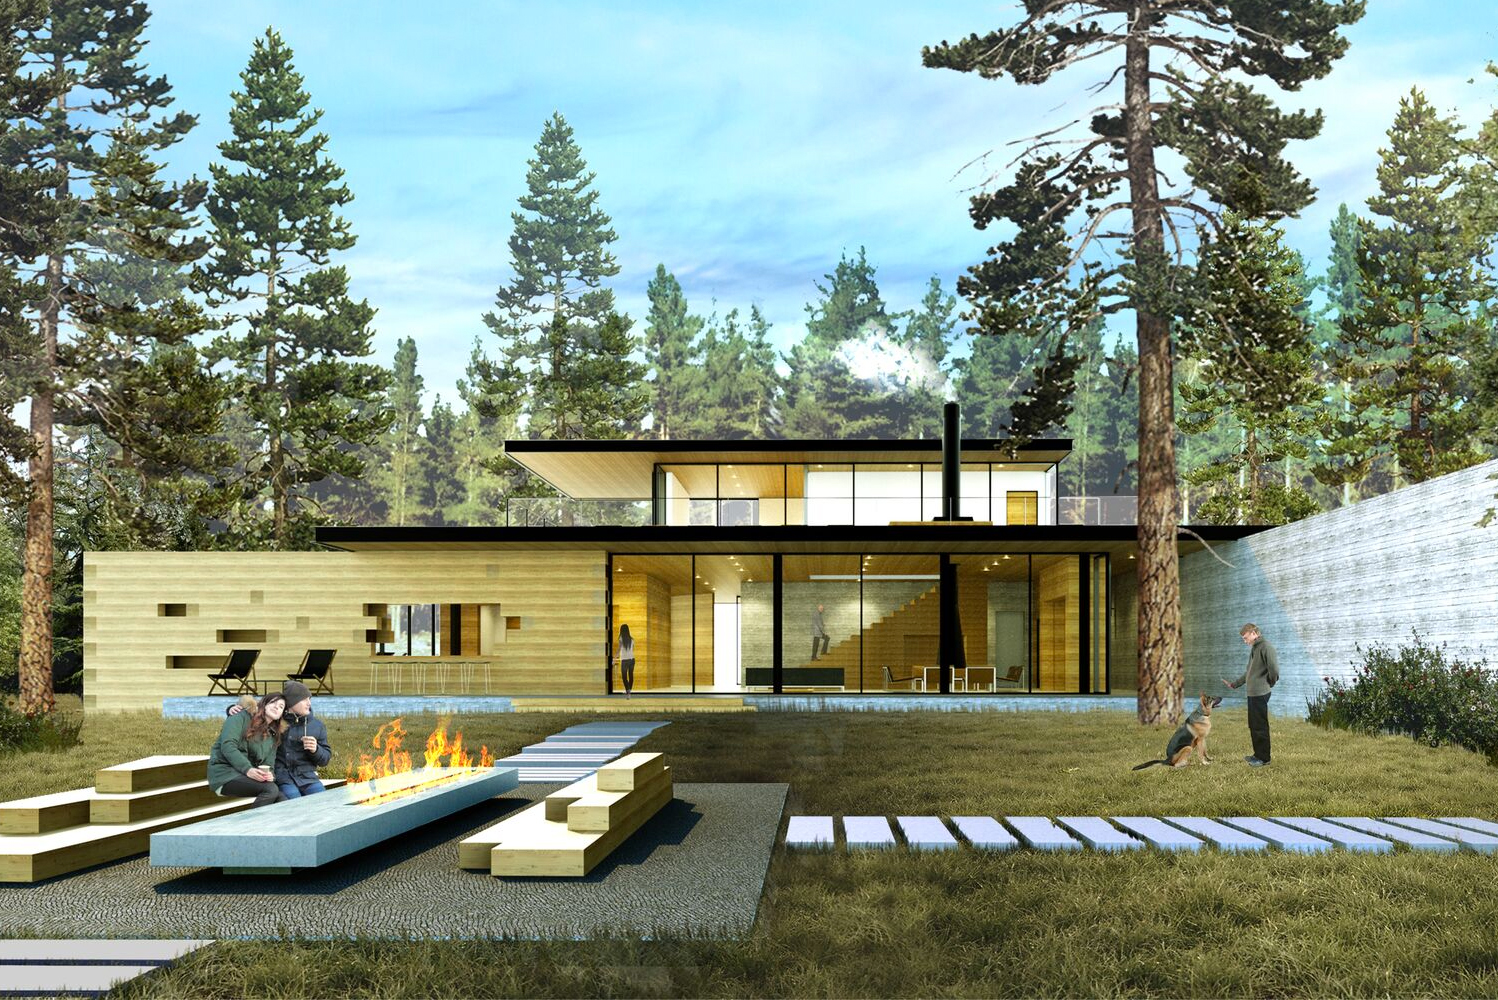 Located on 35 acres in the Sierra Nevada Mountains, the property will have a 4,000 square foot clubhouse with reception, meeting space, and indoor/outdoor lounge areas. Image credit: Anacapa Architecture